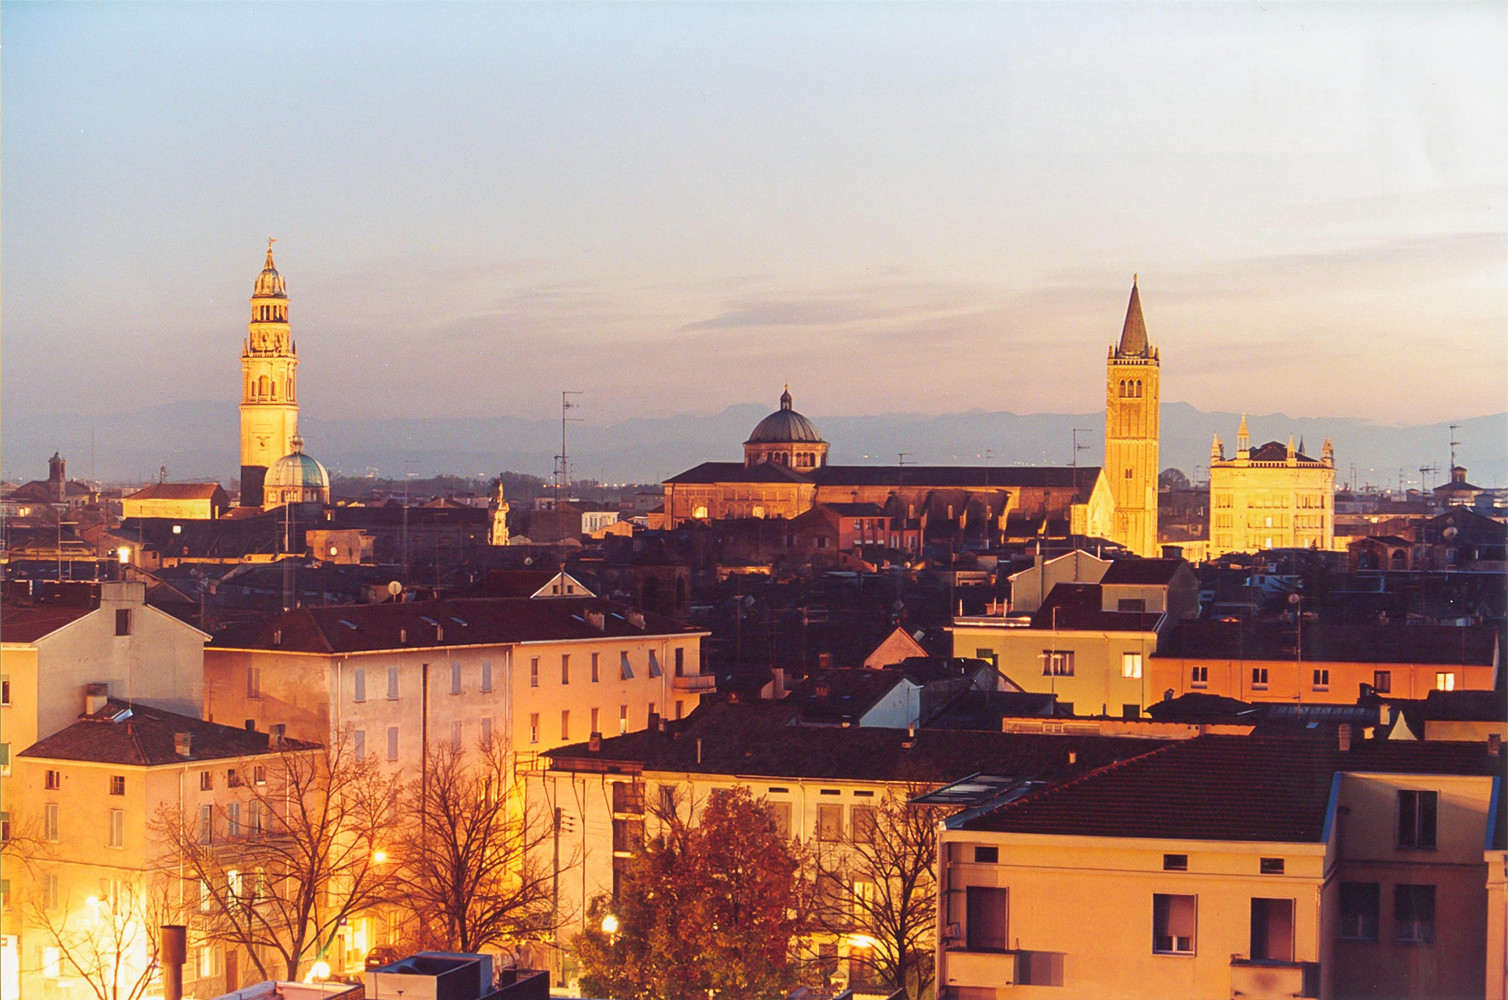 Parma di notte,<br>photo by Carra